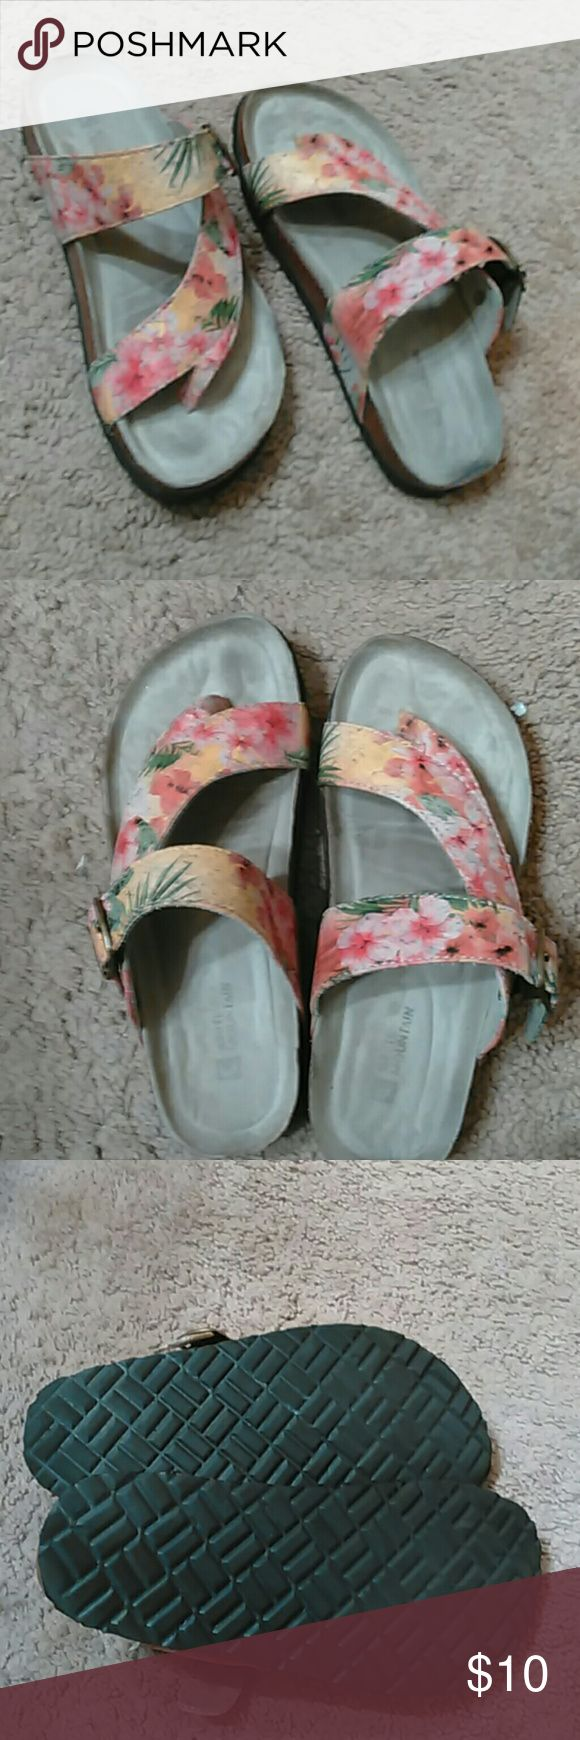 White mountain sandals Tropical flower straps. Great condition. Only worn a couple times. Small signs of wear. Extremely comfortable soles. Very durable bottoms. White Mountain Shoes Sandals